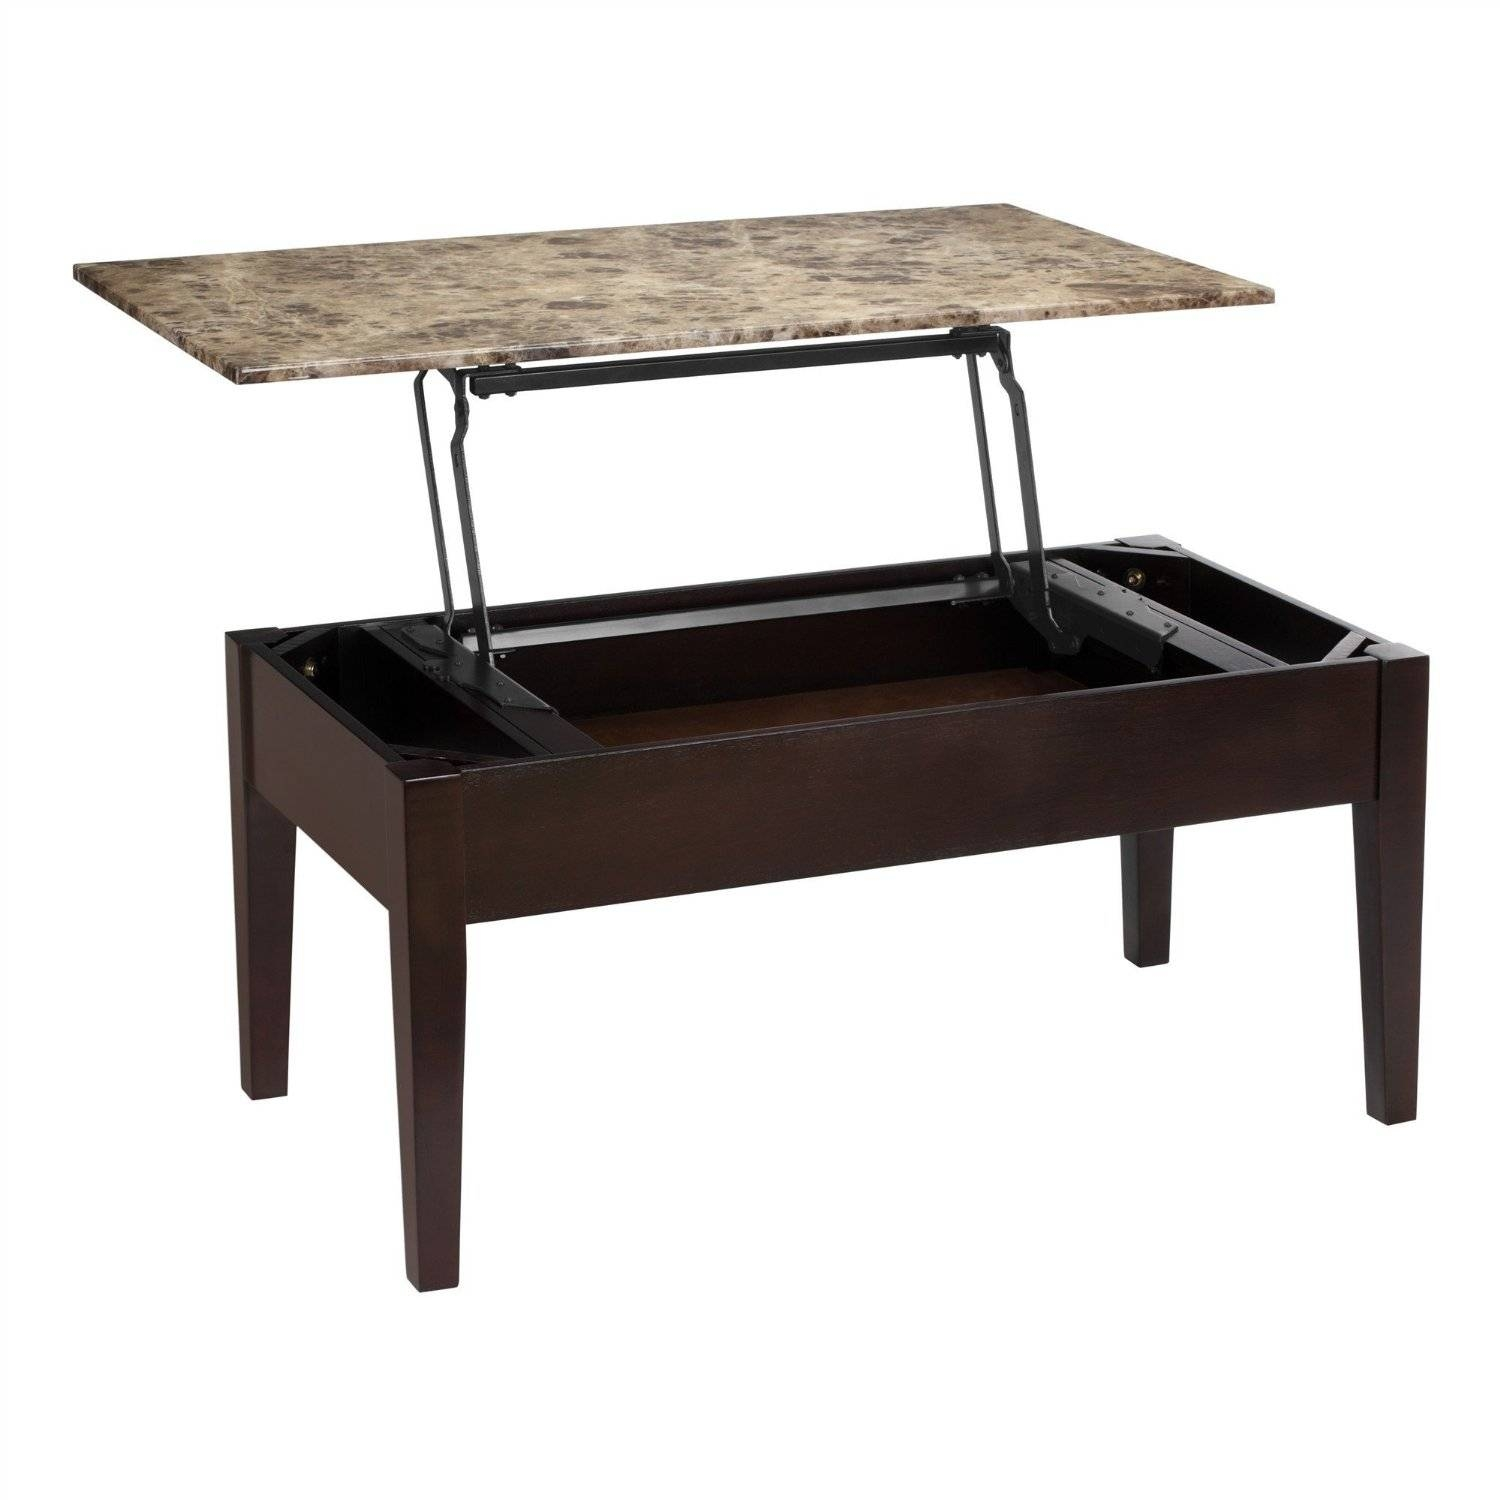 Better Homes And Gardens River Crest Coffee Table. Free Shipping regarding Cheap Coffee Tables (Image 2 of 30)